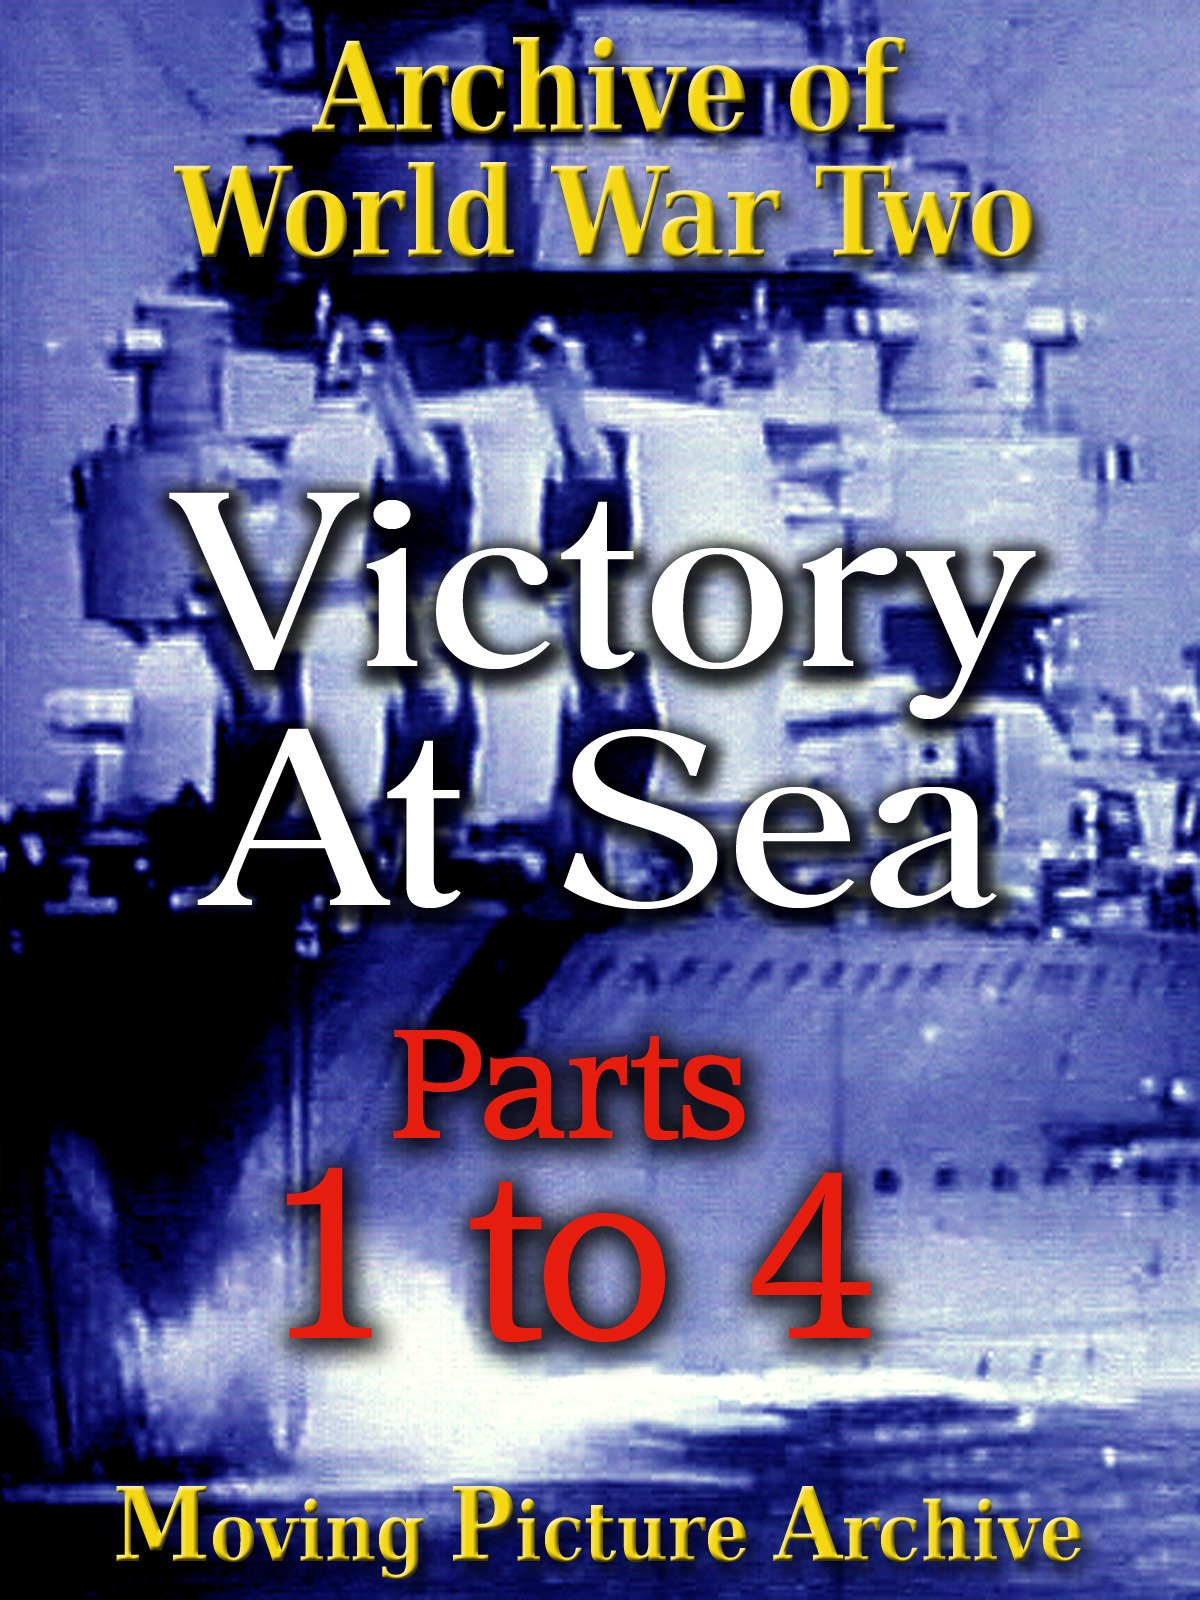 Archive of World War Two - Victory at Sea - Parts 1 to 4